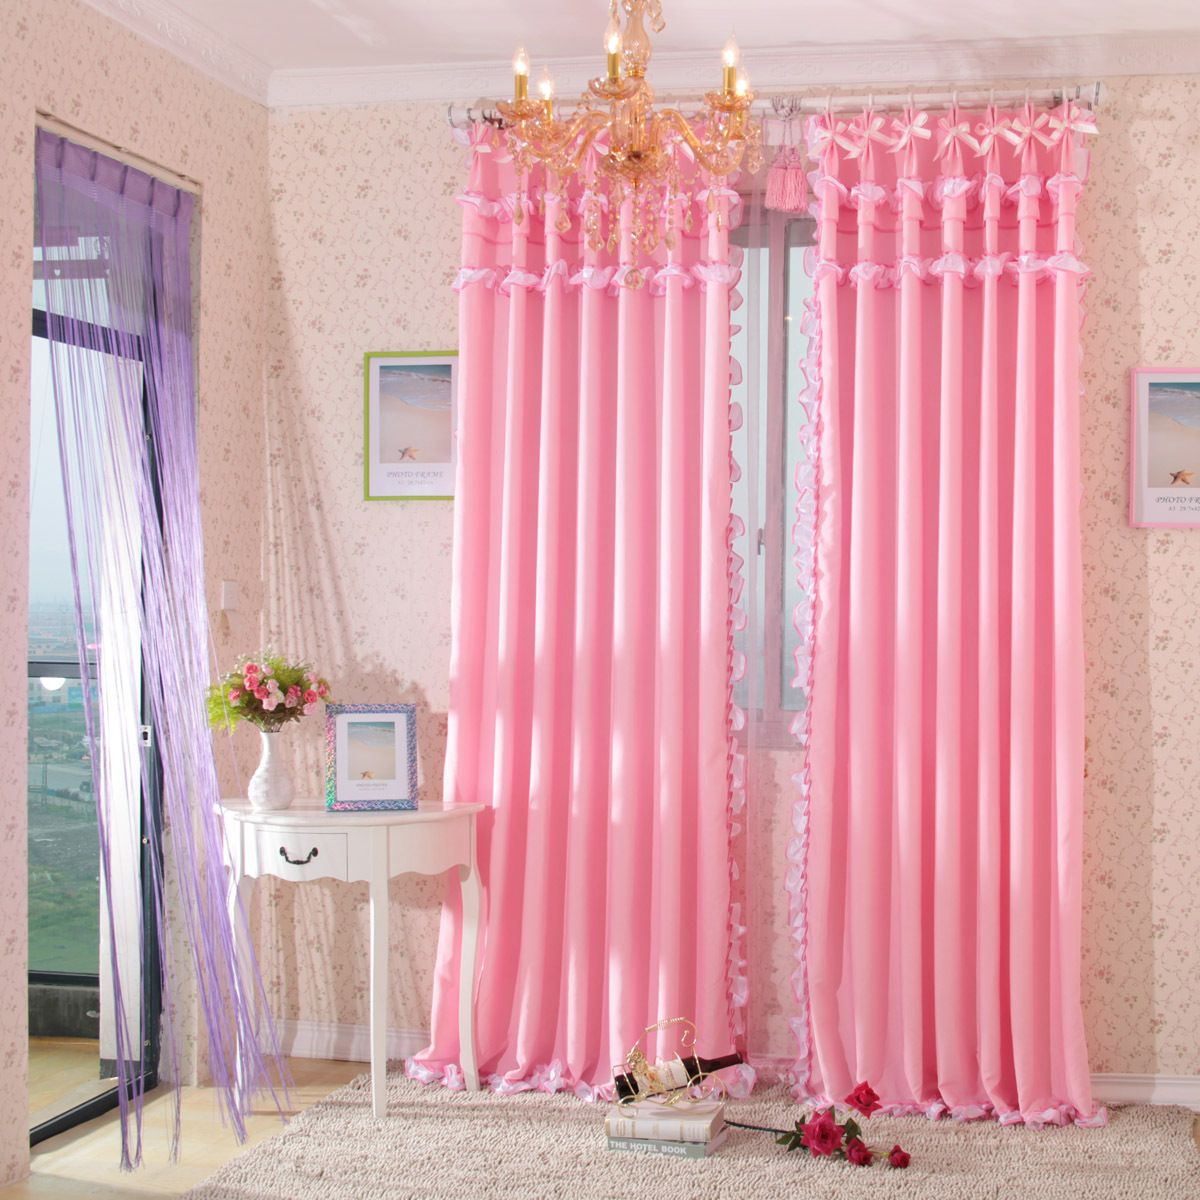 Remarkable Pink Bedroom Curtain In Impressive Floral Wall Design Bedroom With White Vase Table And Wonderful Gold Chandelier Also Grey Shag Rug Gorgeous   ...